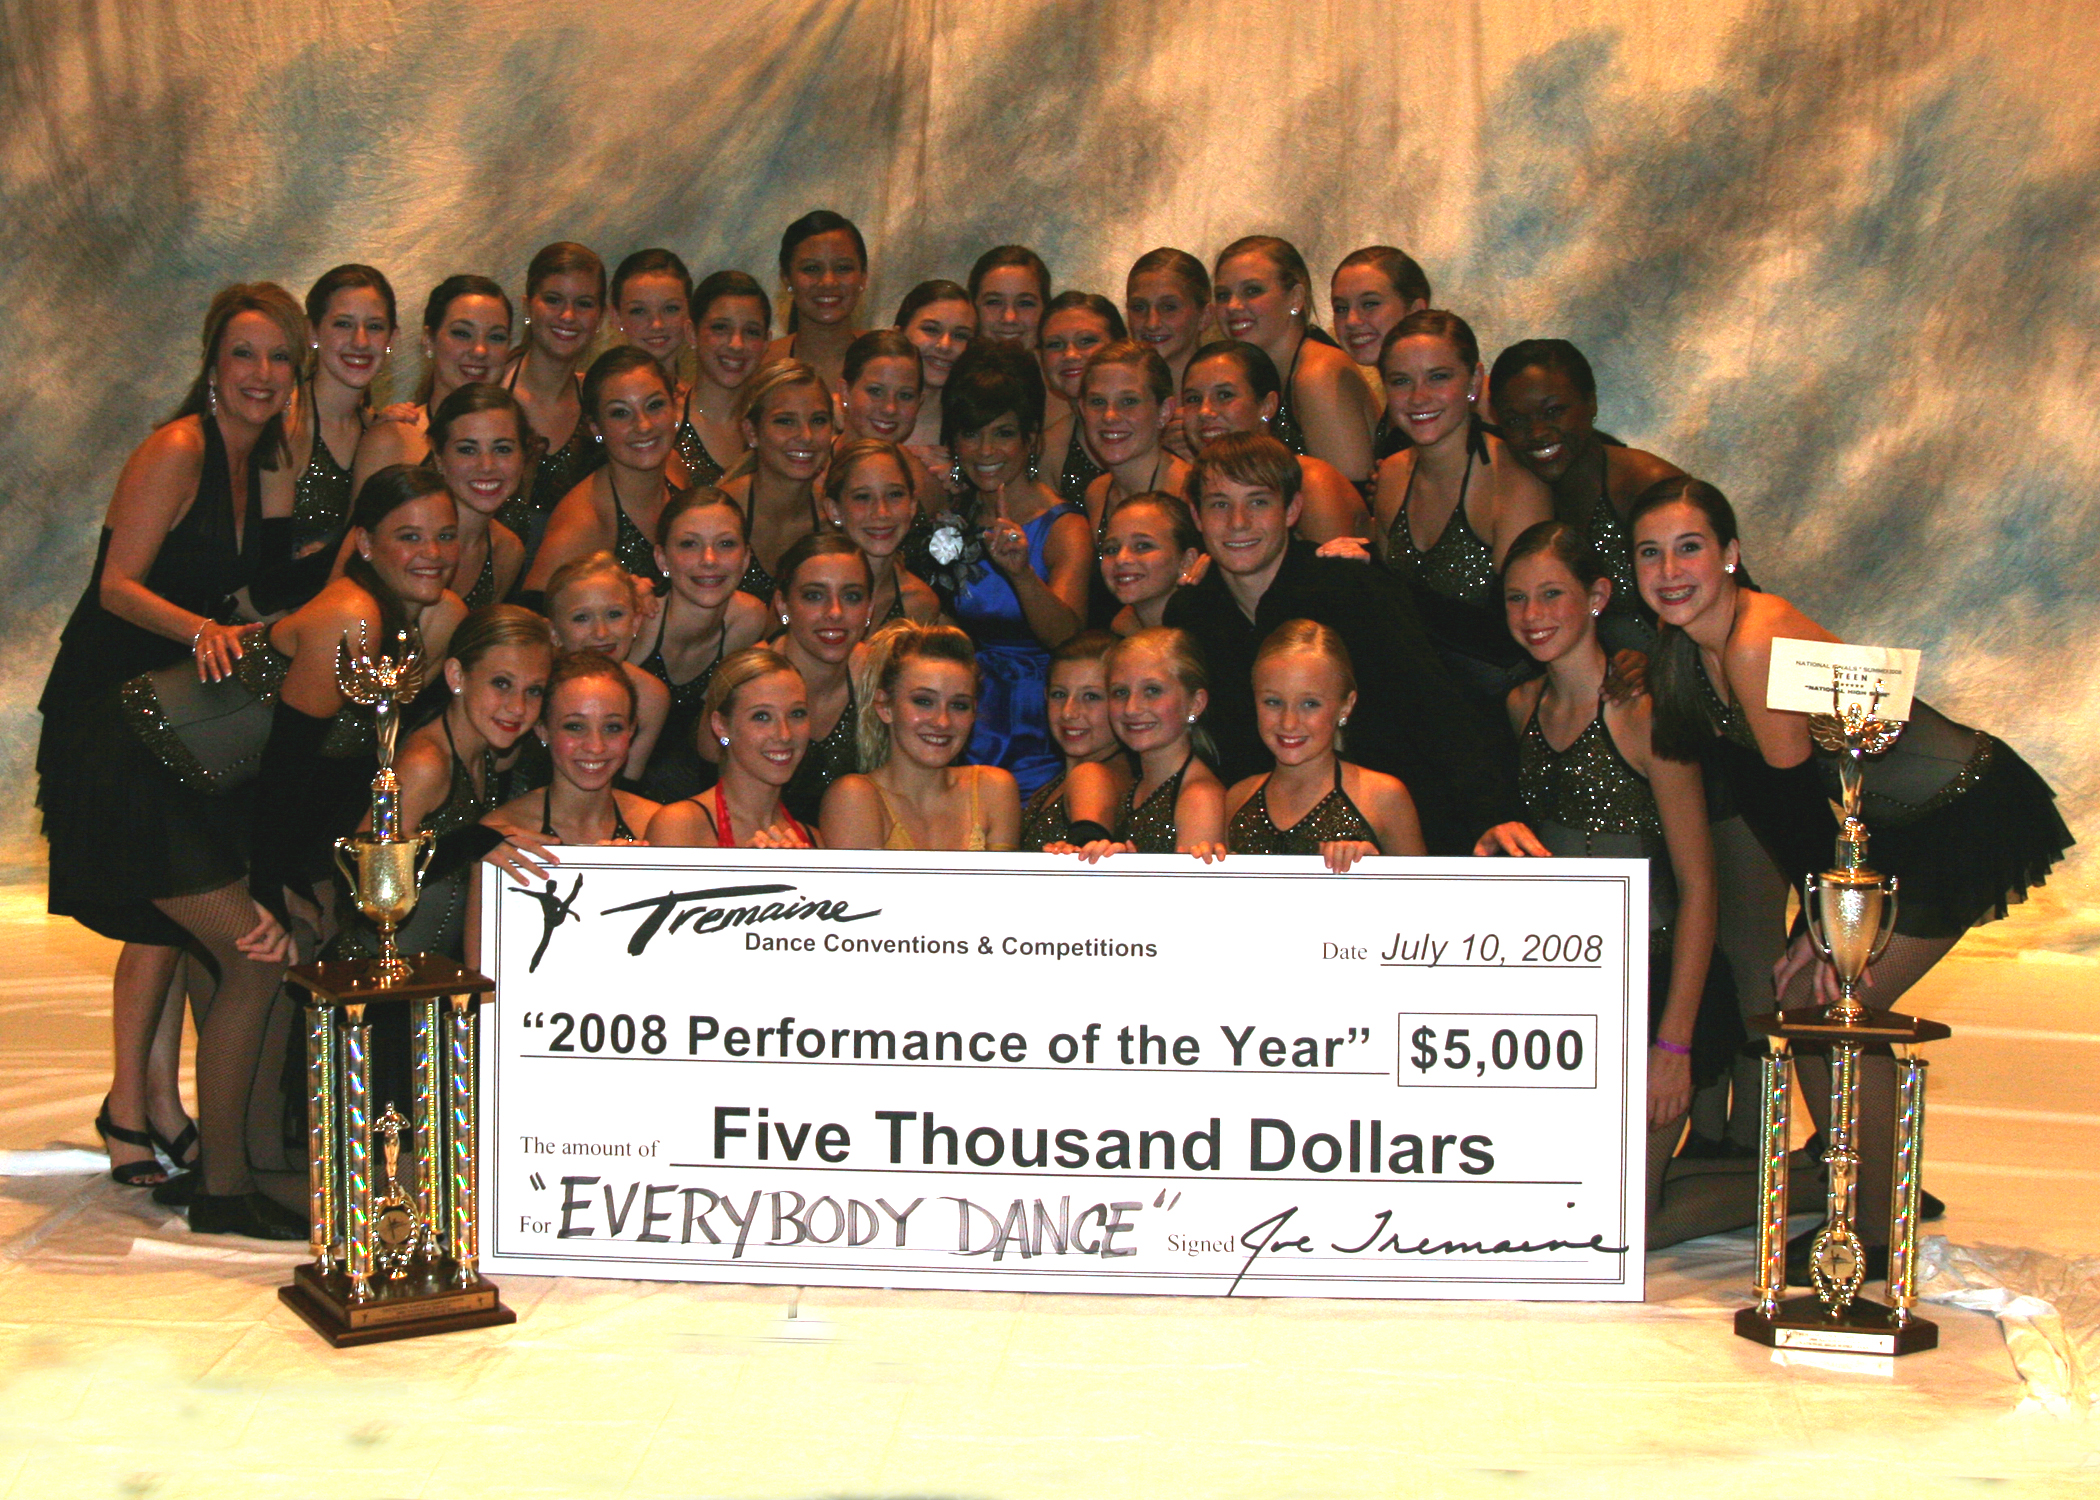 Performance of the Year 2008